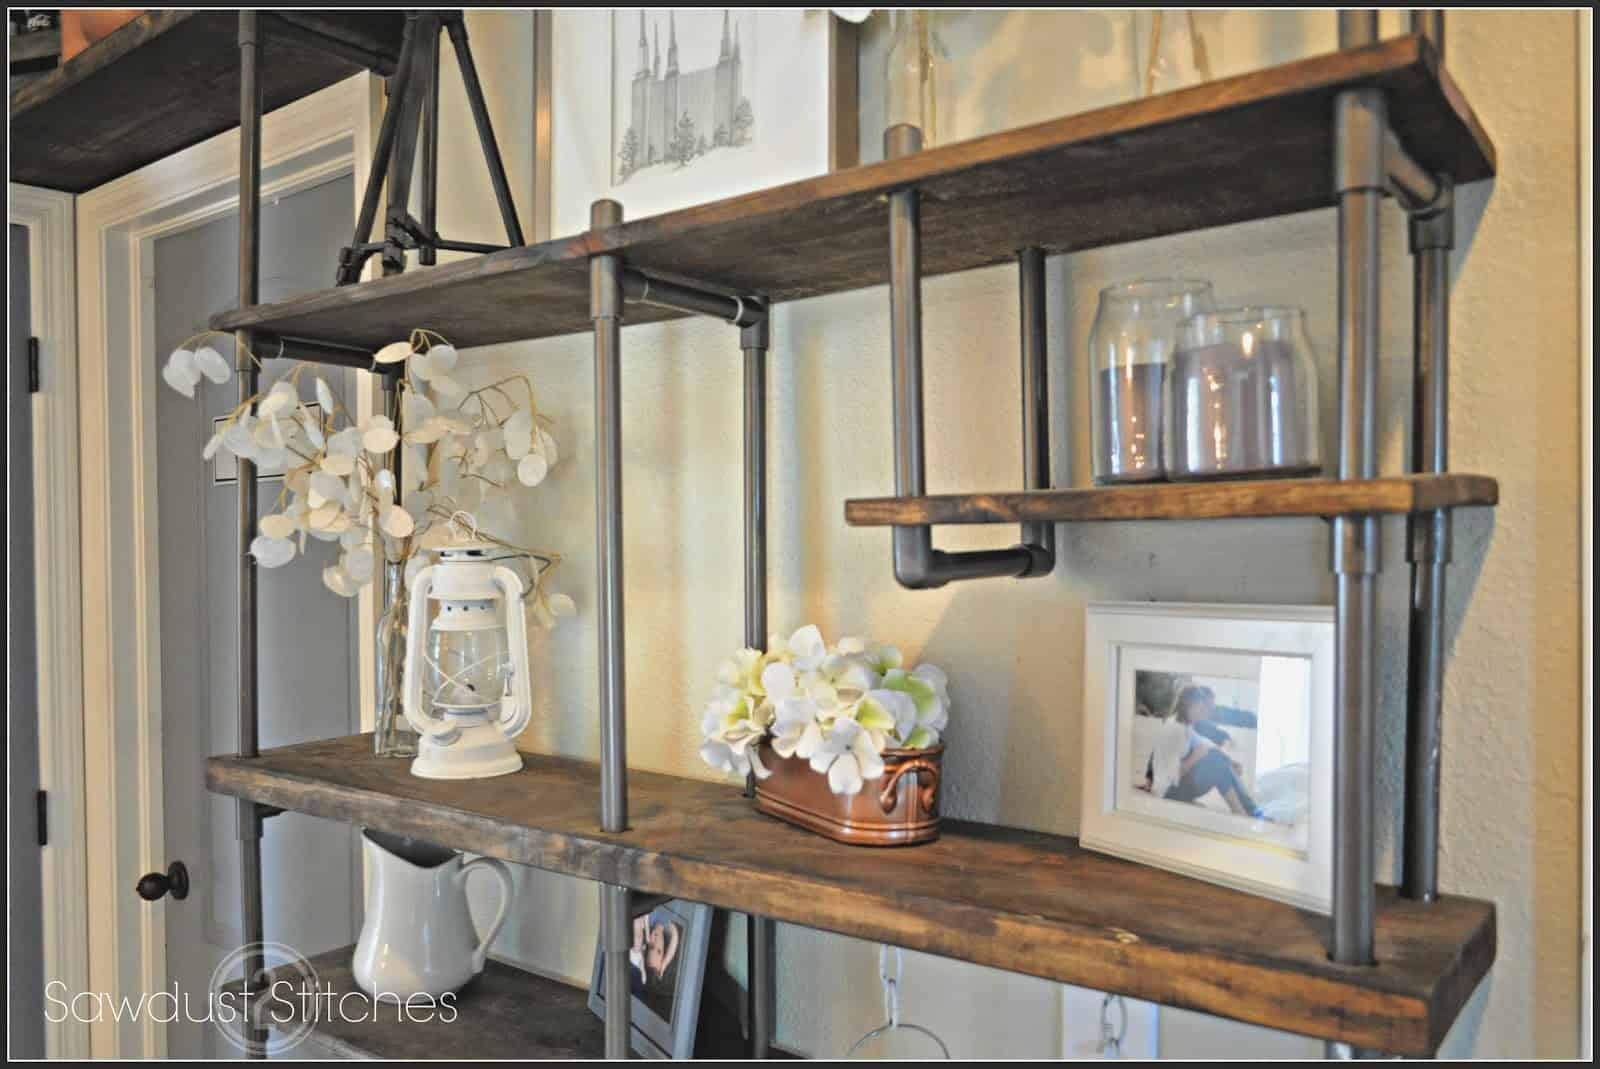 use PVC pipe to build an inexpensive industrial style shelf Sawdust 2 Stitches on Remodelaholic